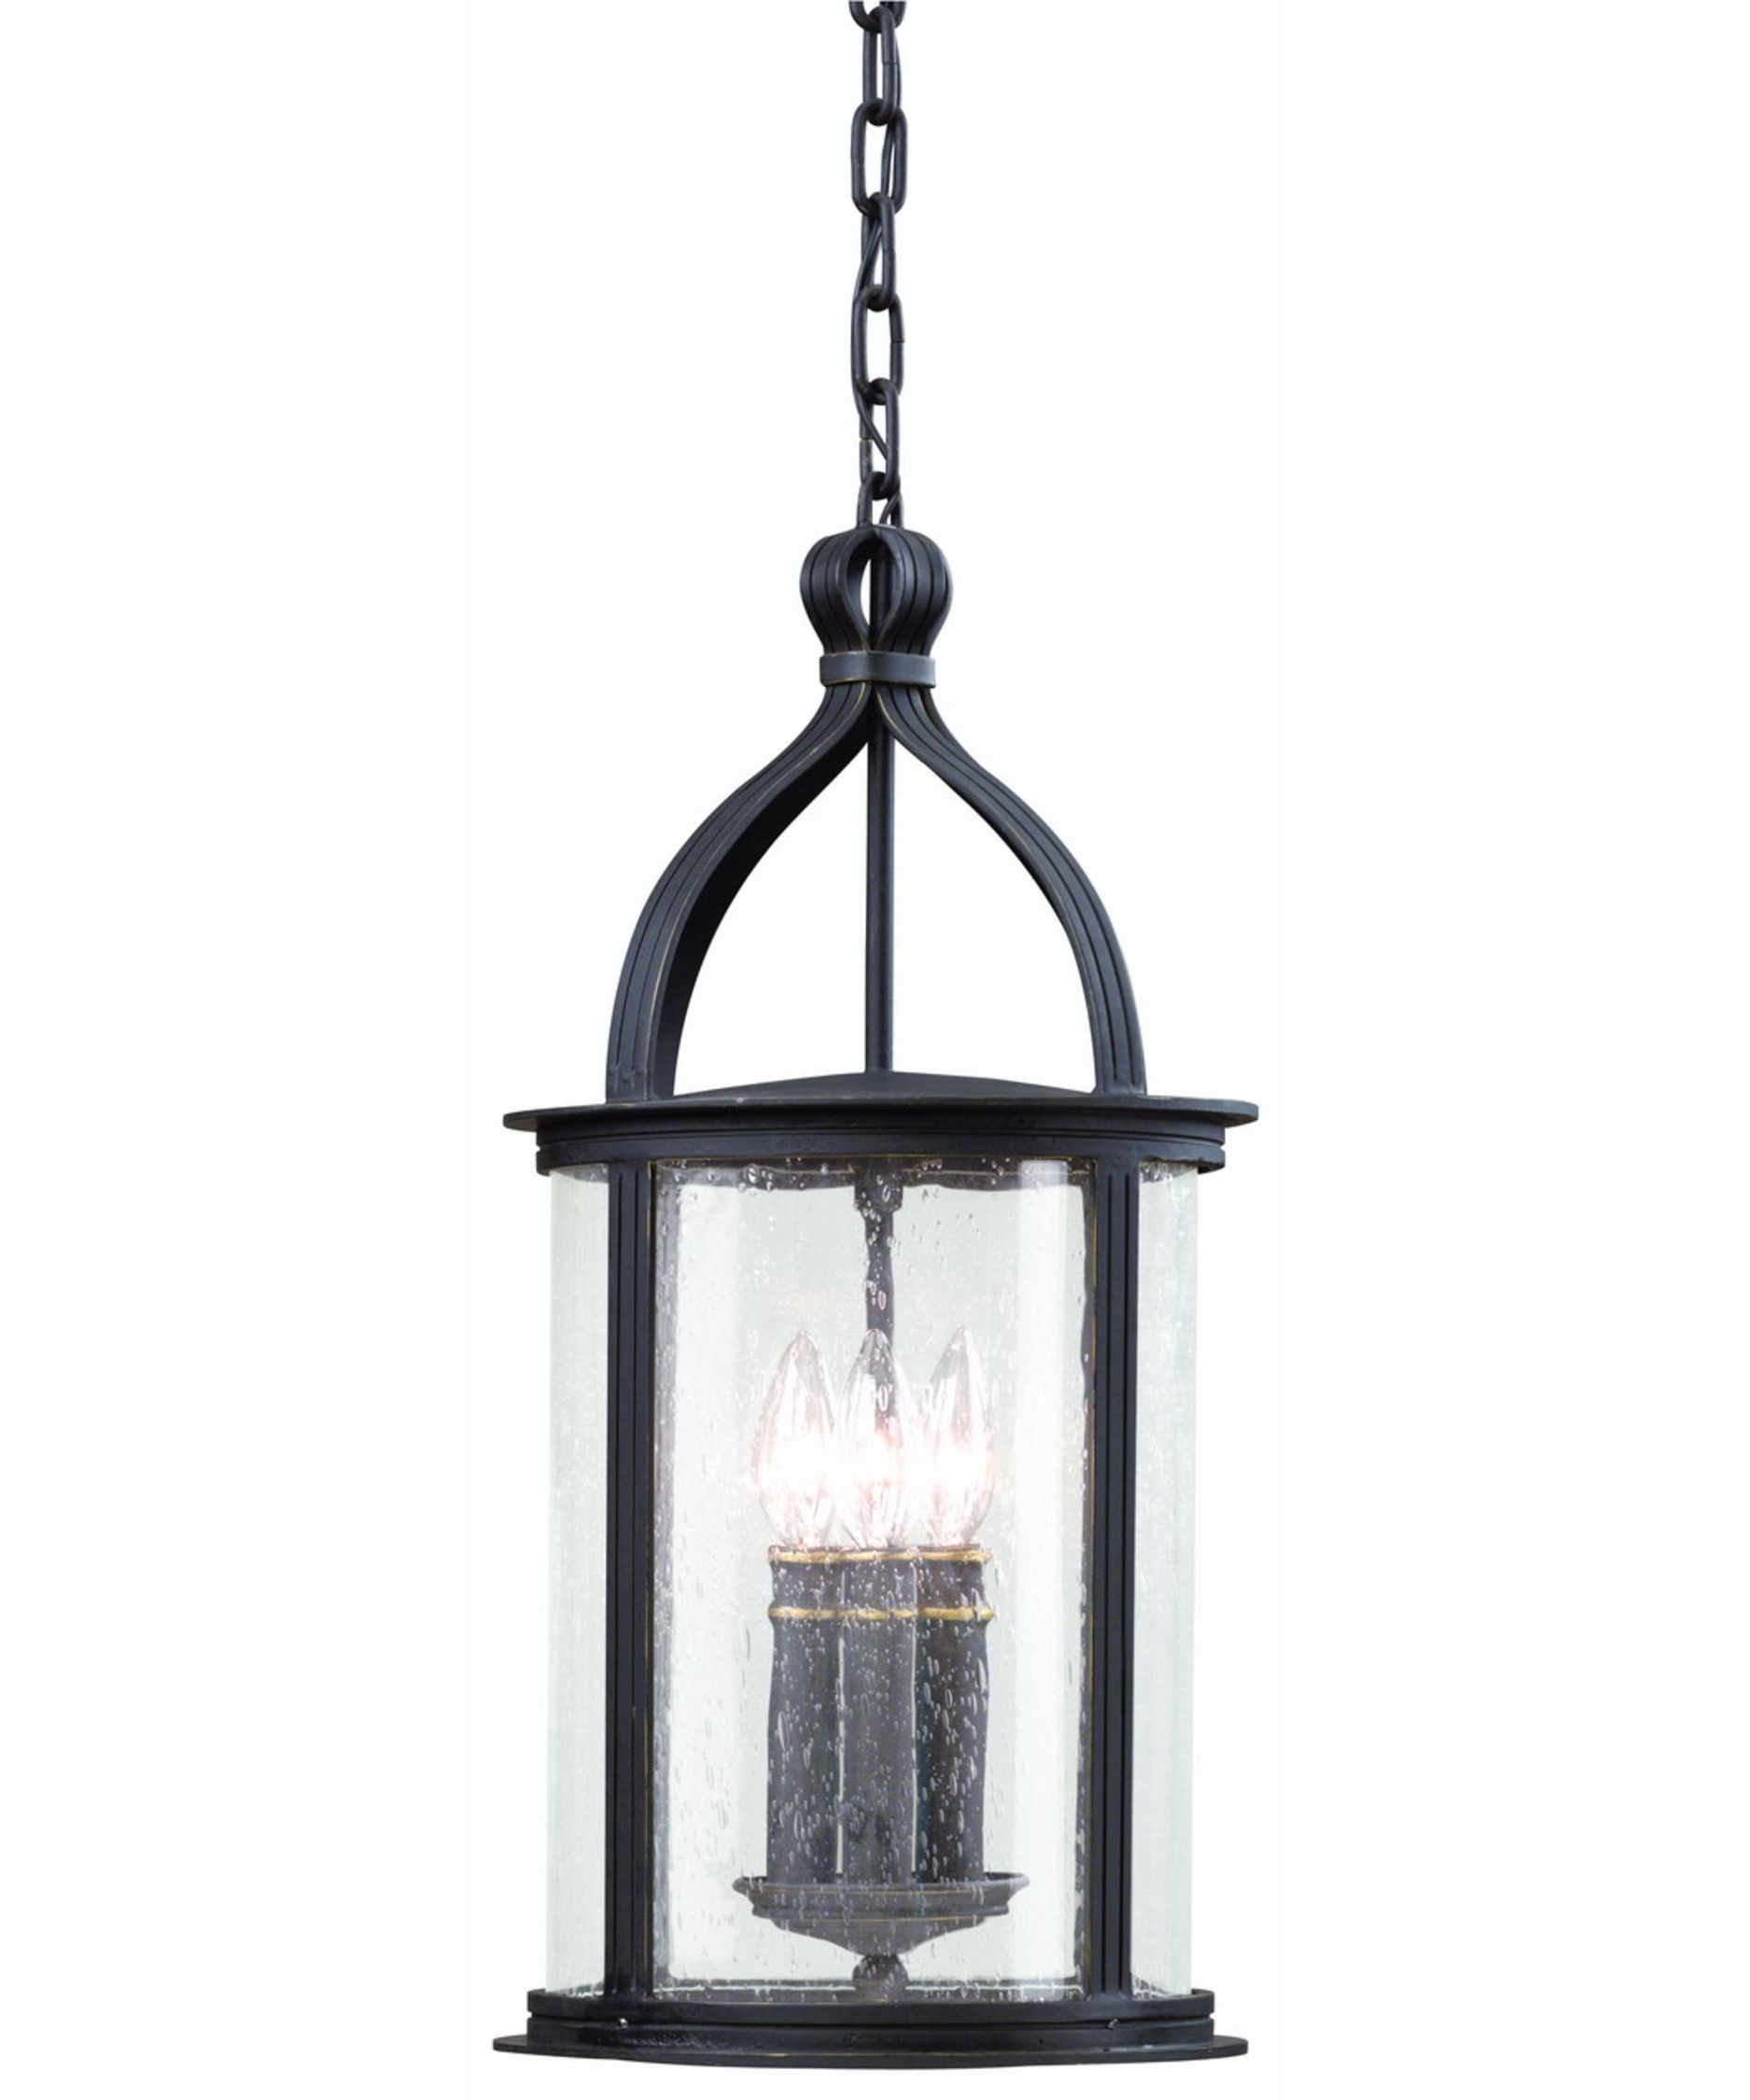 Outdoor Hanging Light In Black Inside Most Up To Date Troy Lighting F9476 Scarsdale 10 Inch Wide 3 Light Outdoor Hanging (View 10 of 20)